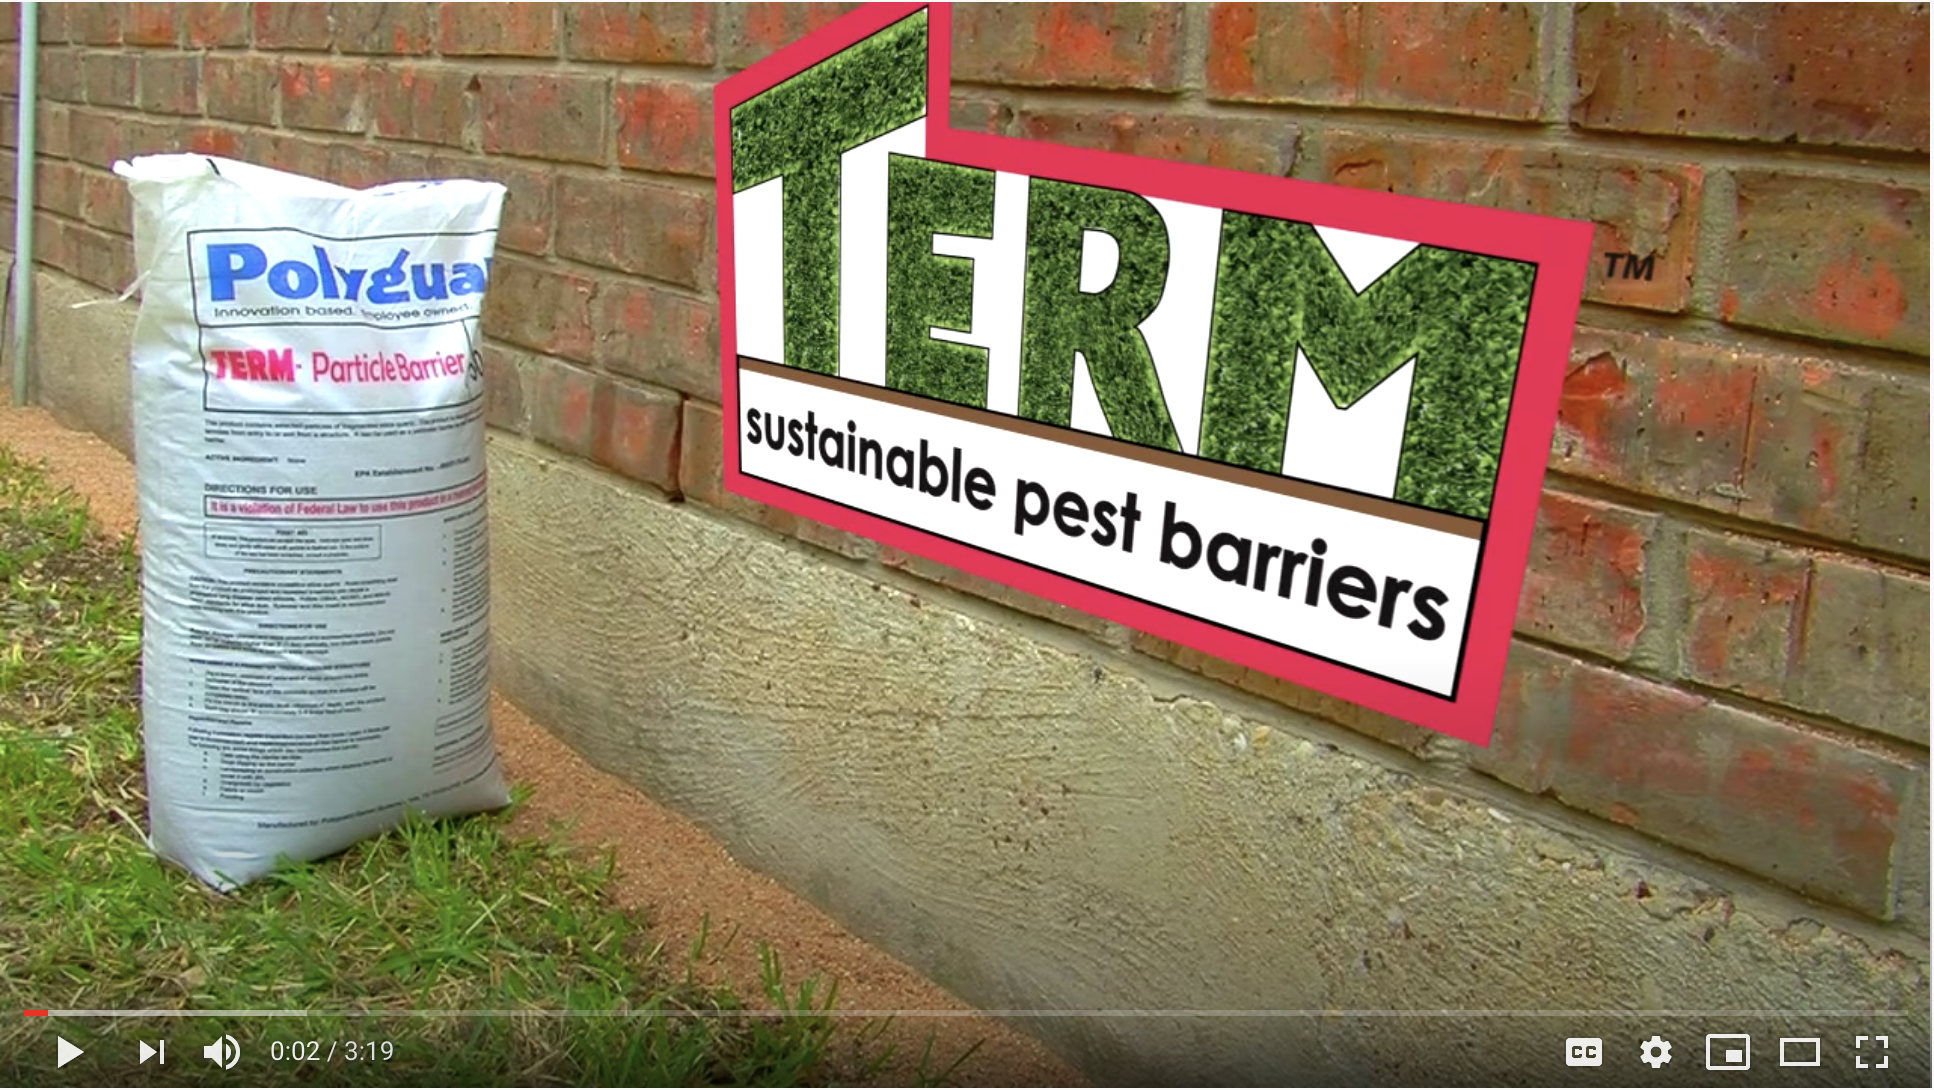 Termite Particle Barrier for Exposed Concrete Perimeter